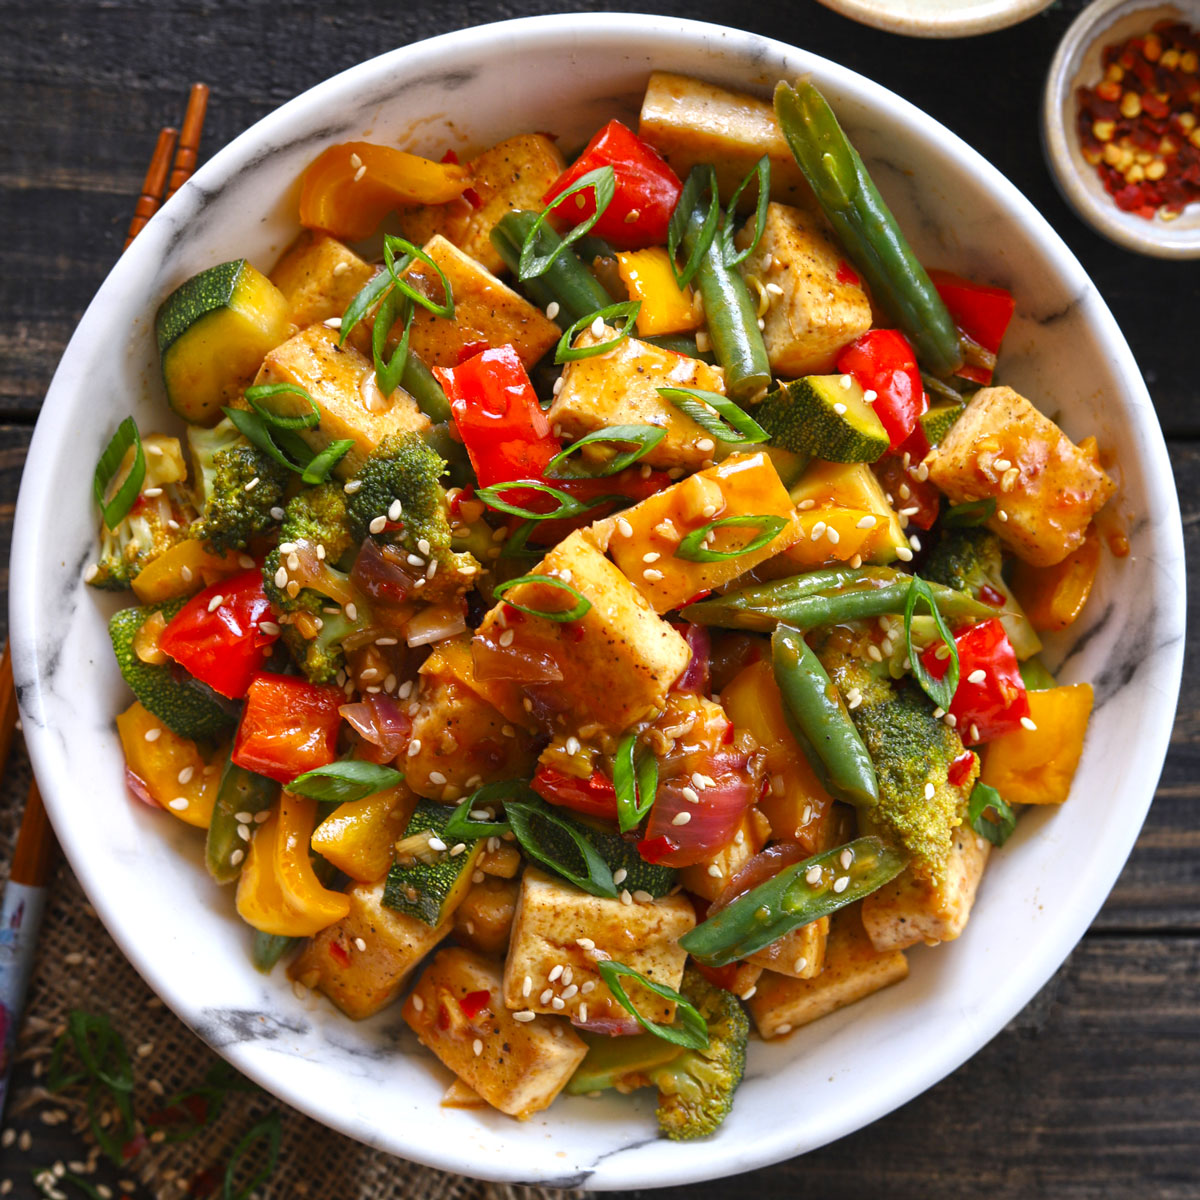 Tofu Stir Fry With Veggies Vegan Gluten Free Fun Food Frolic